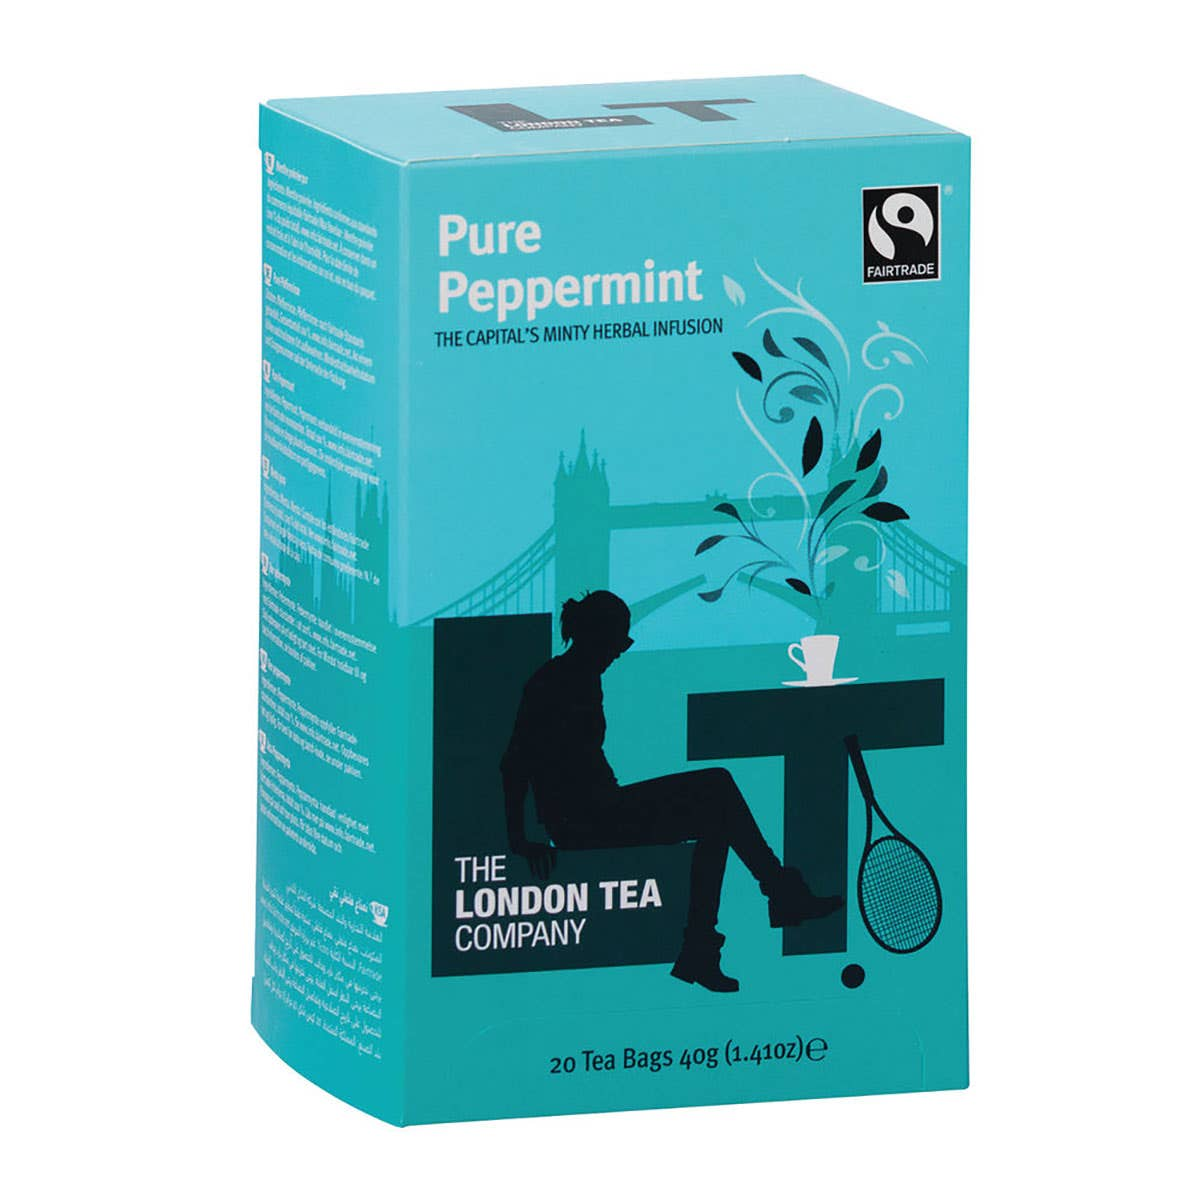 London Tea Company Pure Peppermint Tea Bags (20 bags) SINGLE